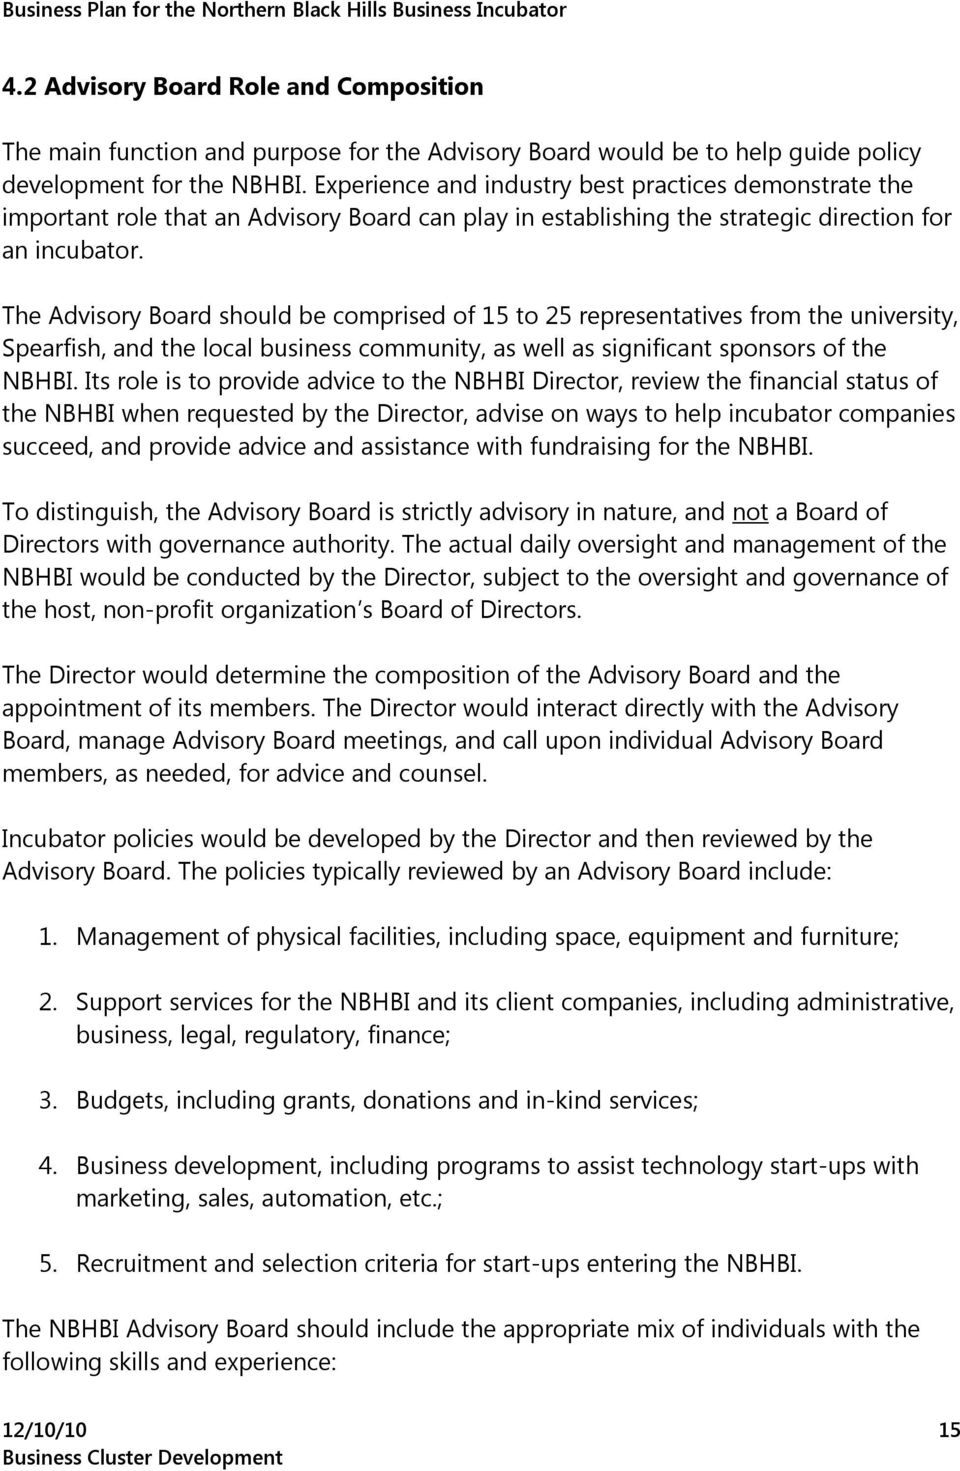 The Advisory Board should be comprised of 15 to 25 representatives from the university, Spearfish, and the local business community, as well as significant sponsors of the NBHBI.